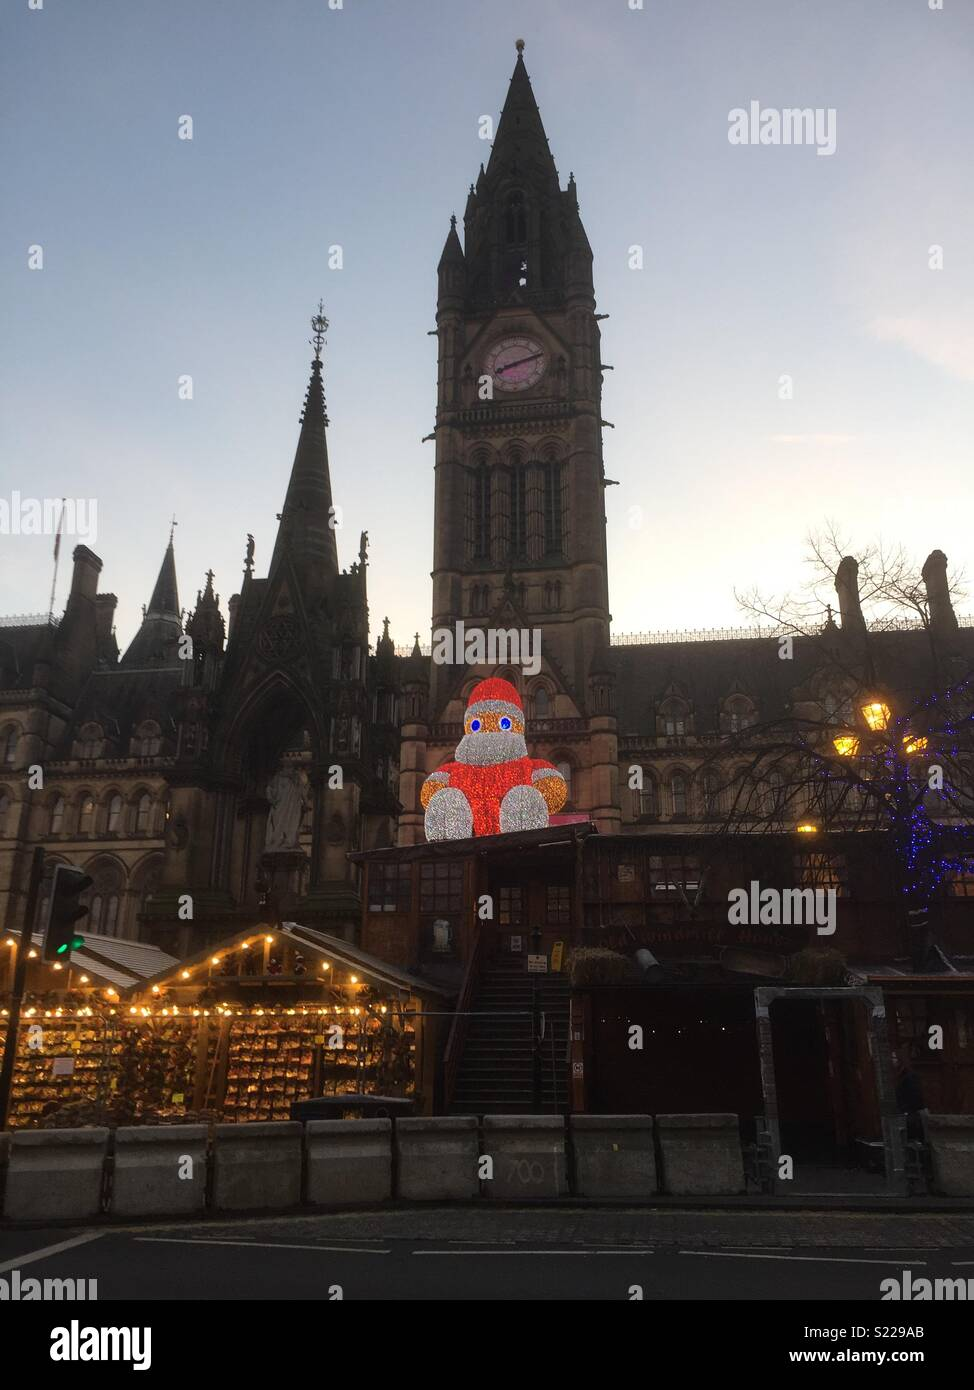 Manchester Christmas Markets - Stock Image